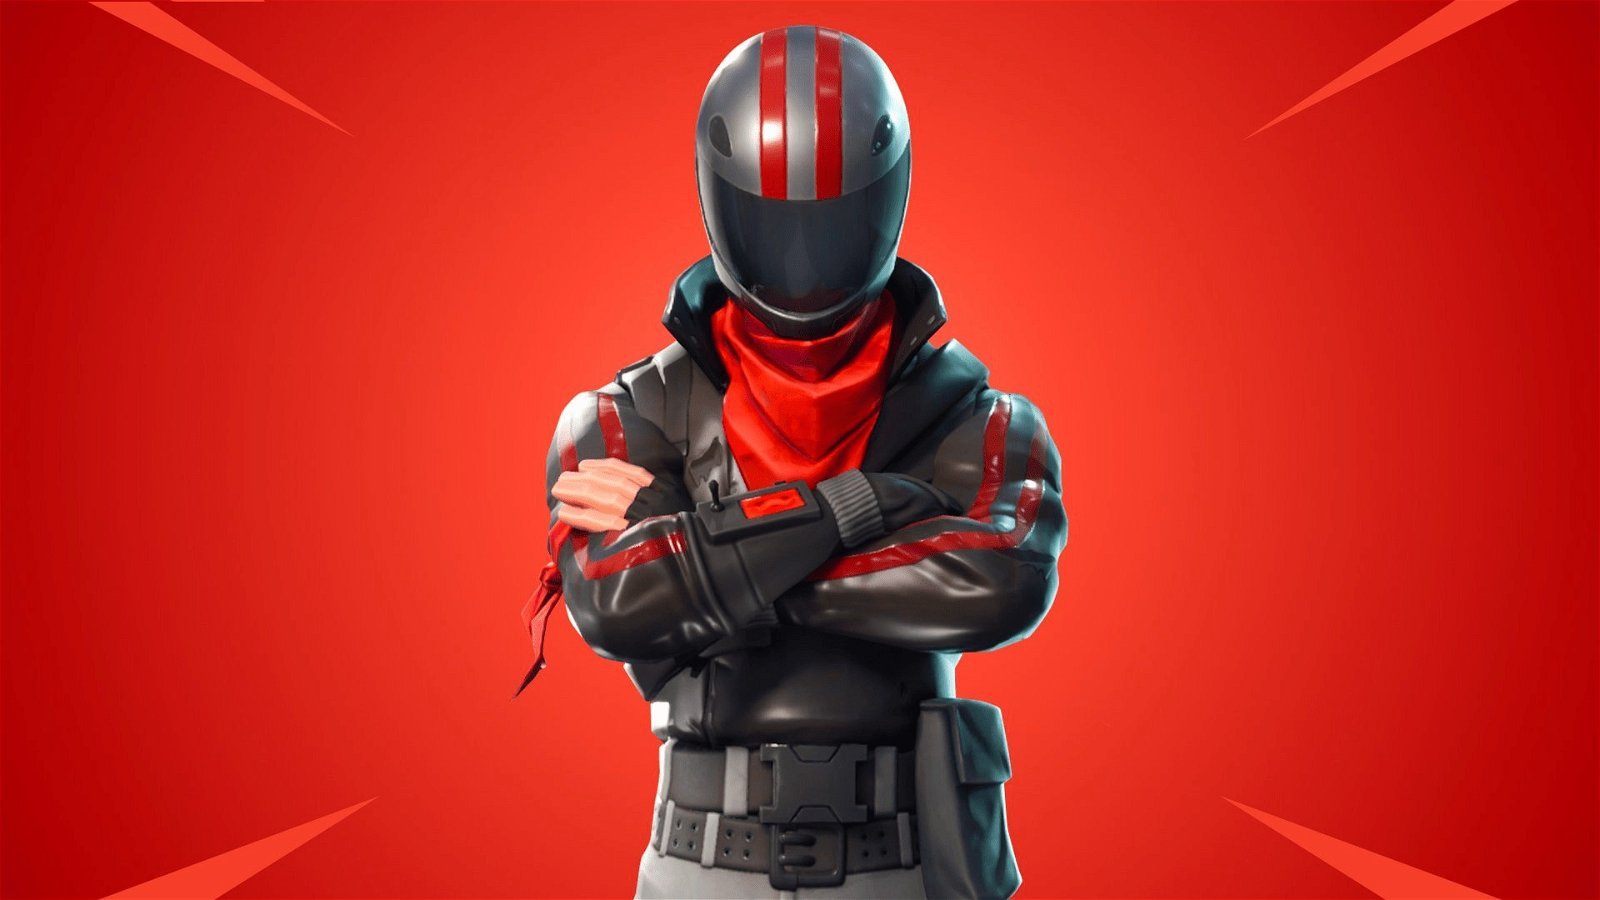 E3 2018: Rumours Confirmed, Fortnite Launching on the Nintendo Switch Today